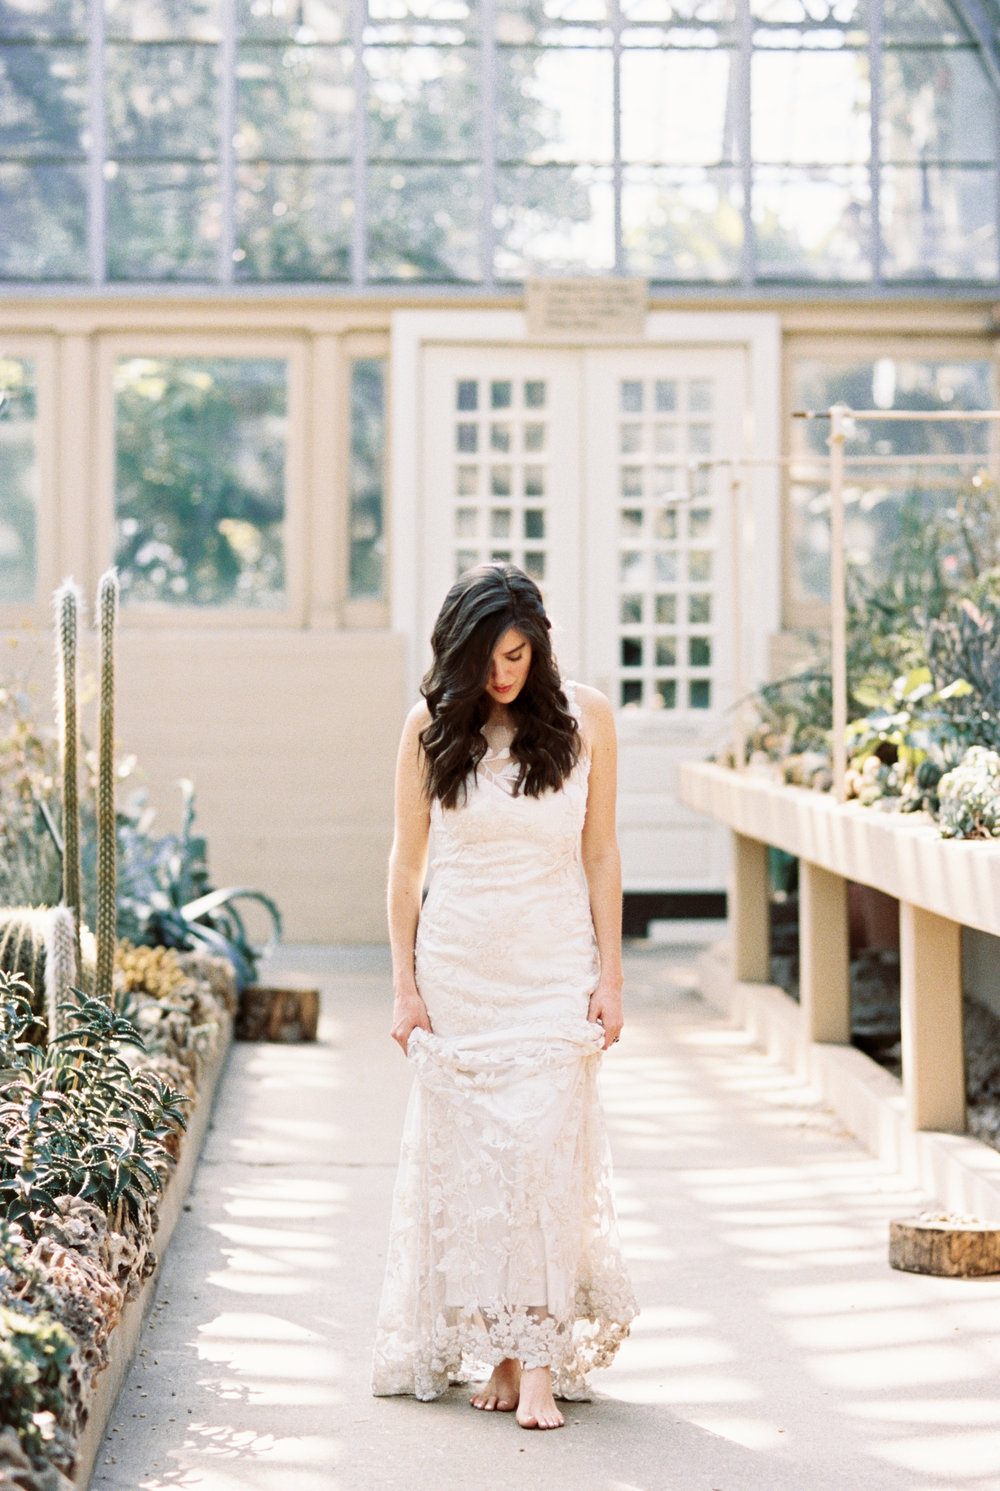 GarfieldParkBridal_Film (10 of 18).jpg